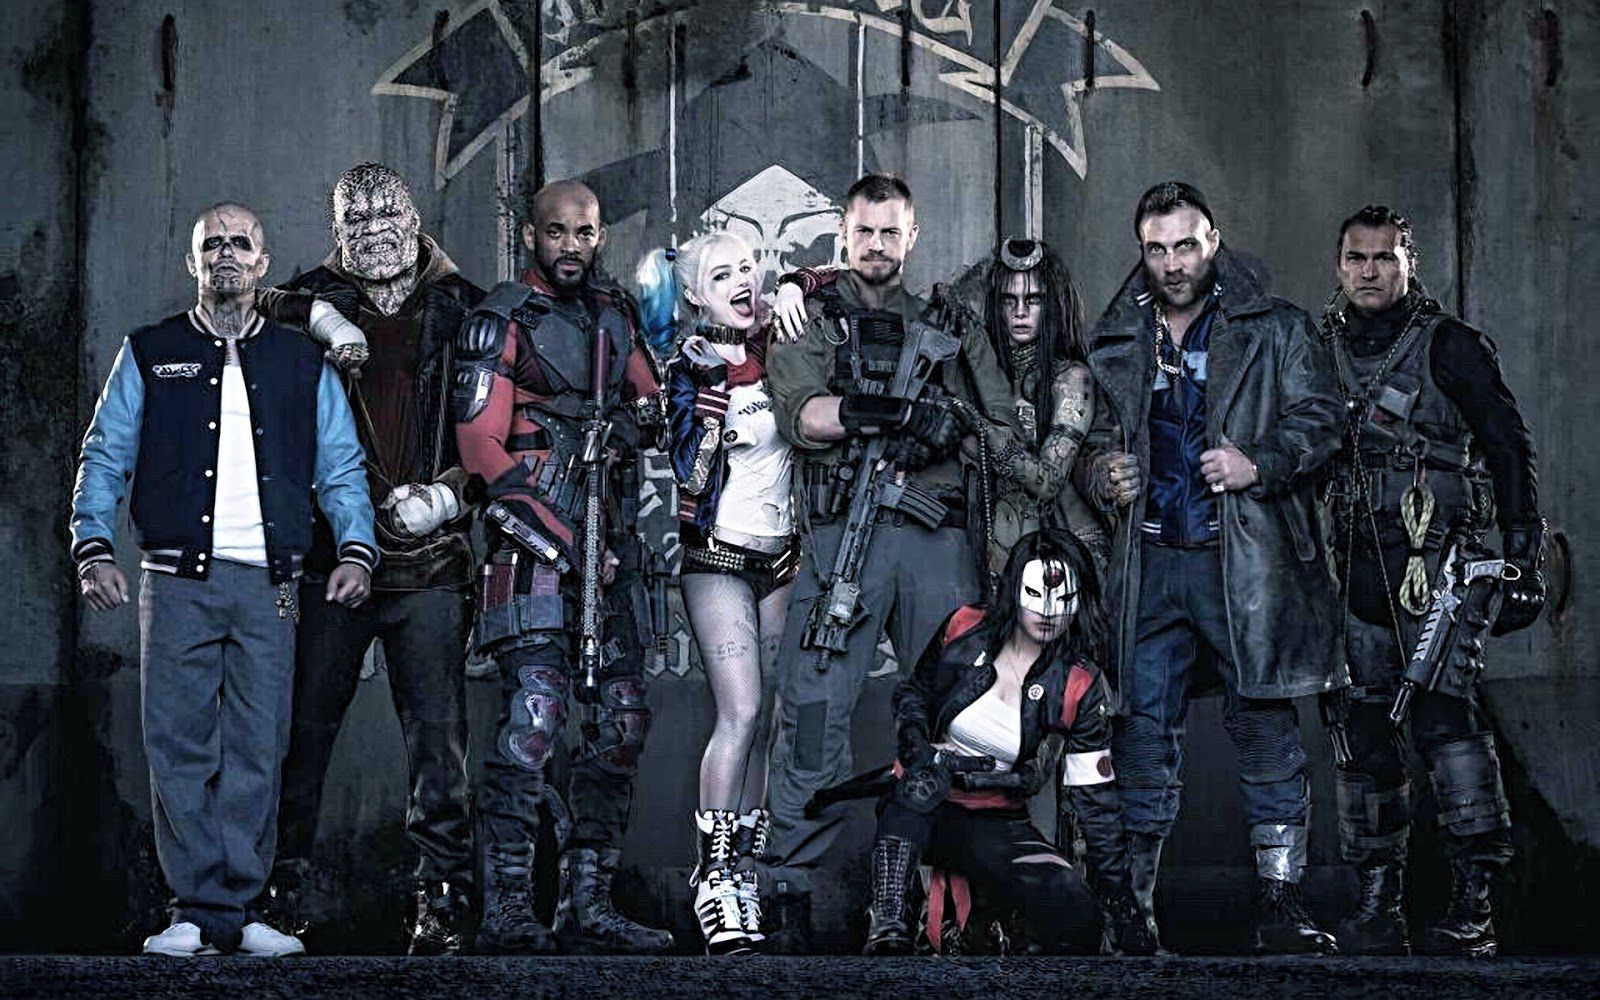 To  mention just some of the anti-heroes involved, the Suicide Squad  includes Harley Quinn, Deadshot, Captain Boomerang, and others